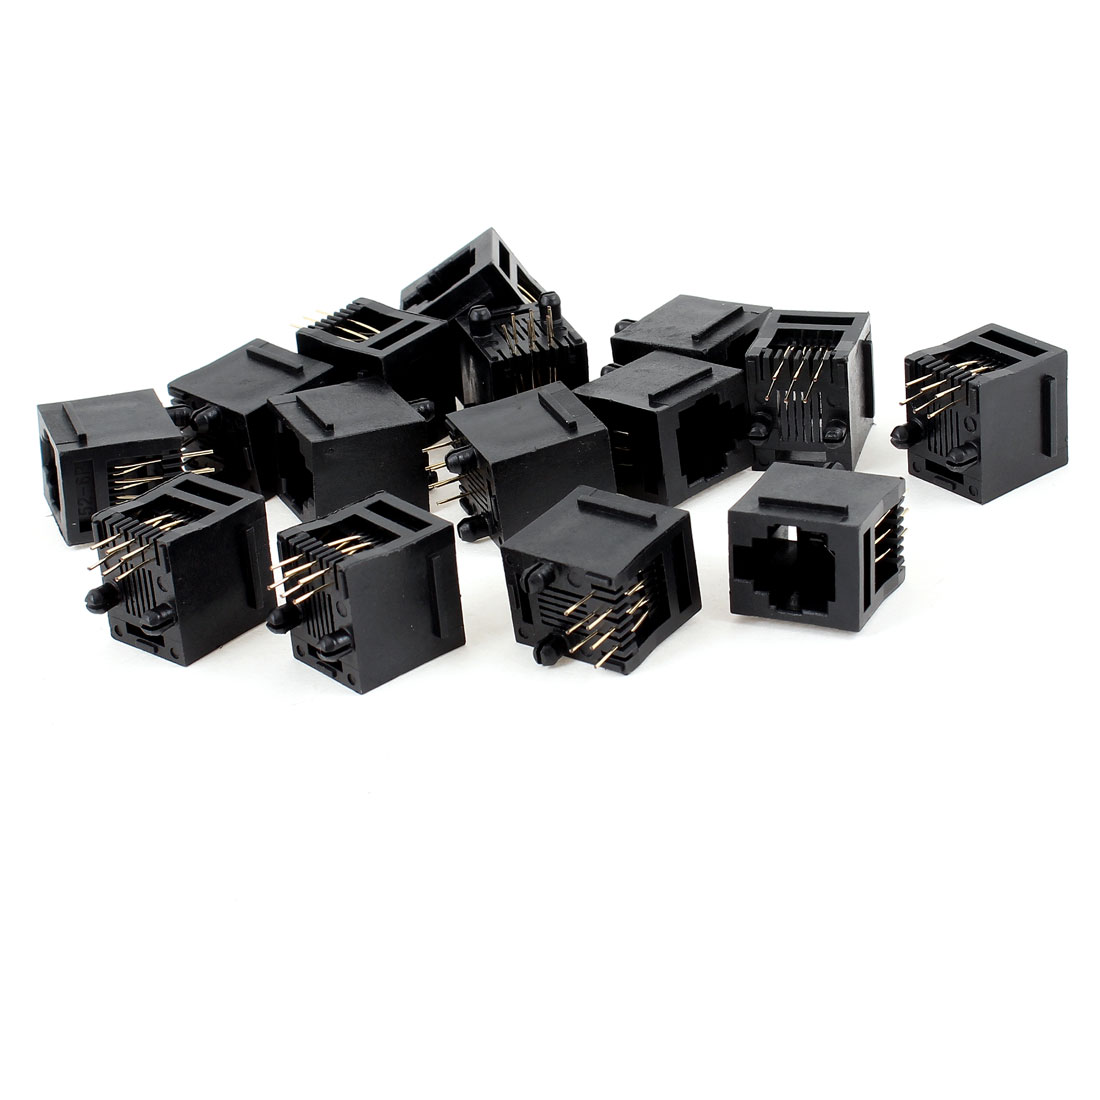 15 Pcs Black Plastic 180 Degree RJ12 6P6C Network Modular PCB Connector Jacks